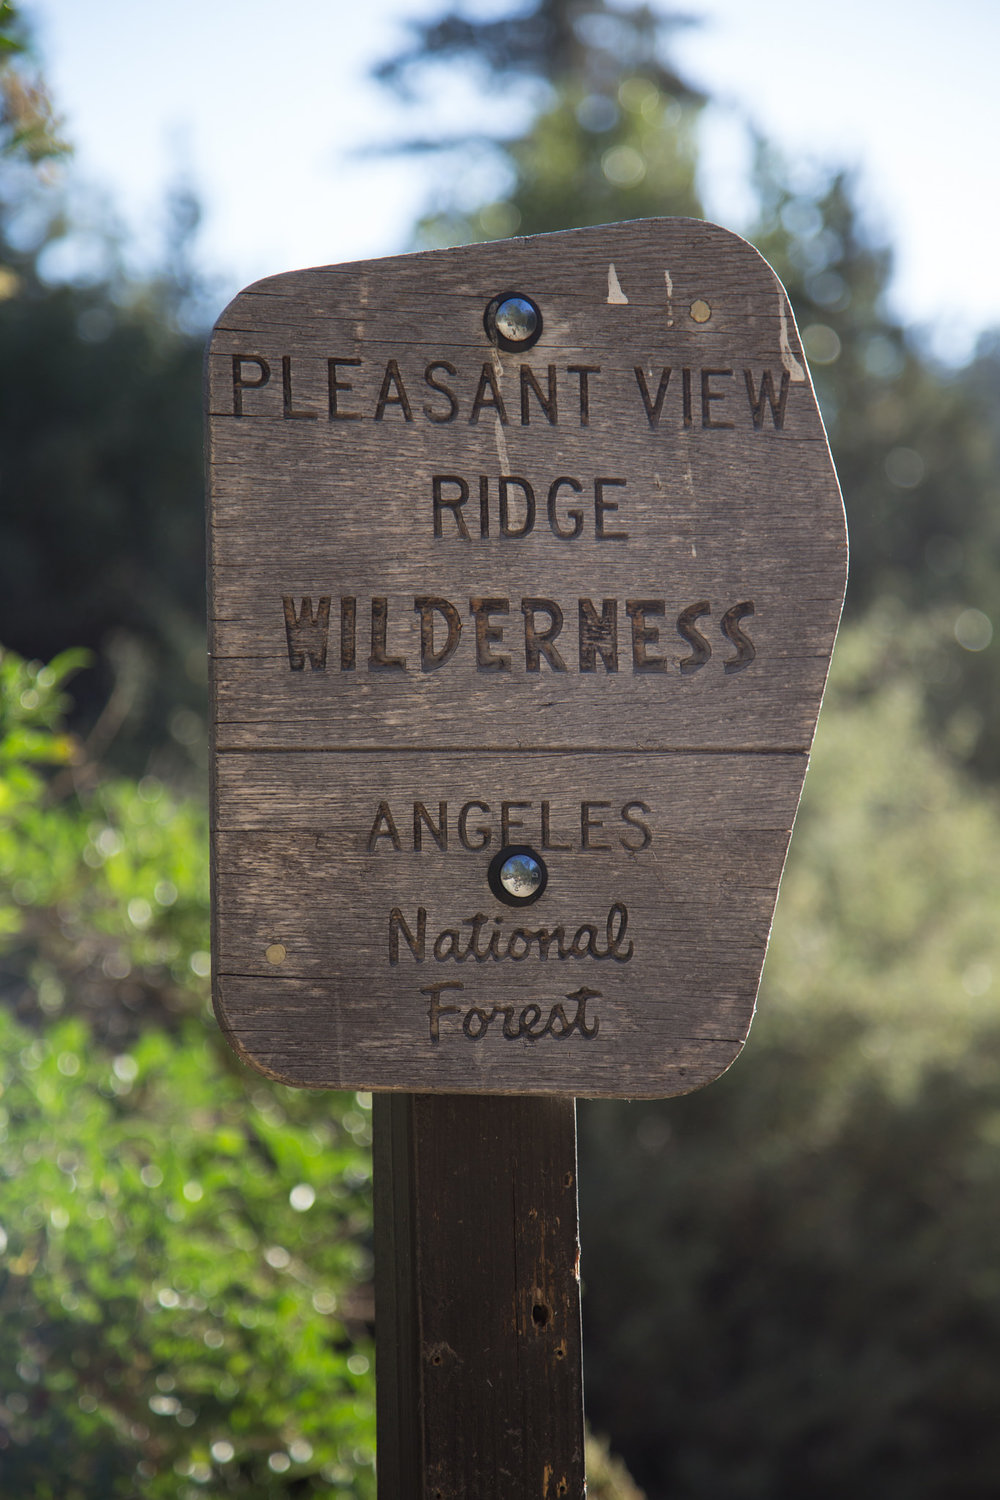 The sign for Pleasant View Ridge Wilderness at the beginning of Burkhart trail at Buckhorn Campground.